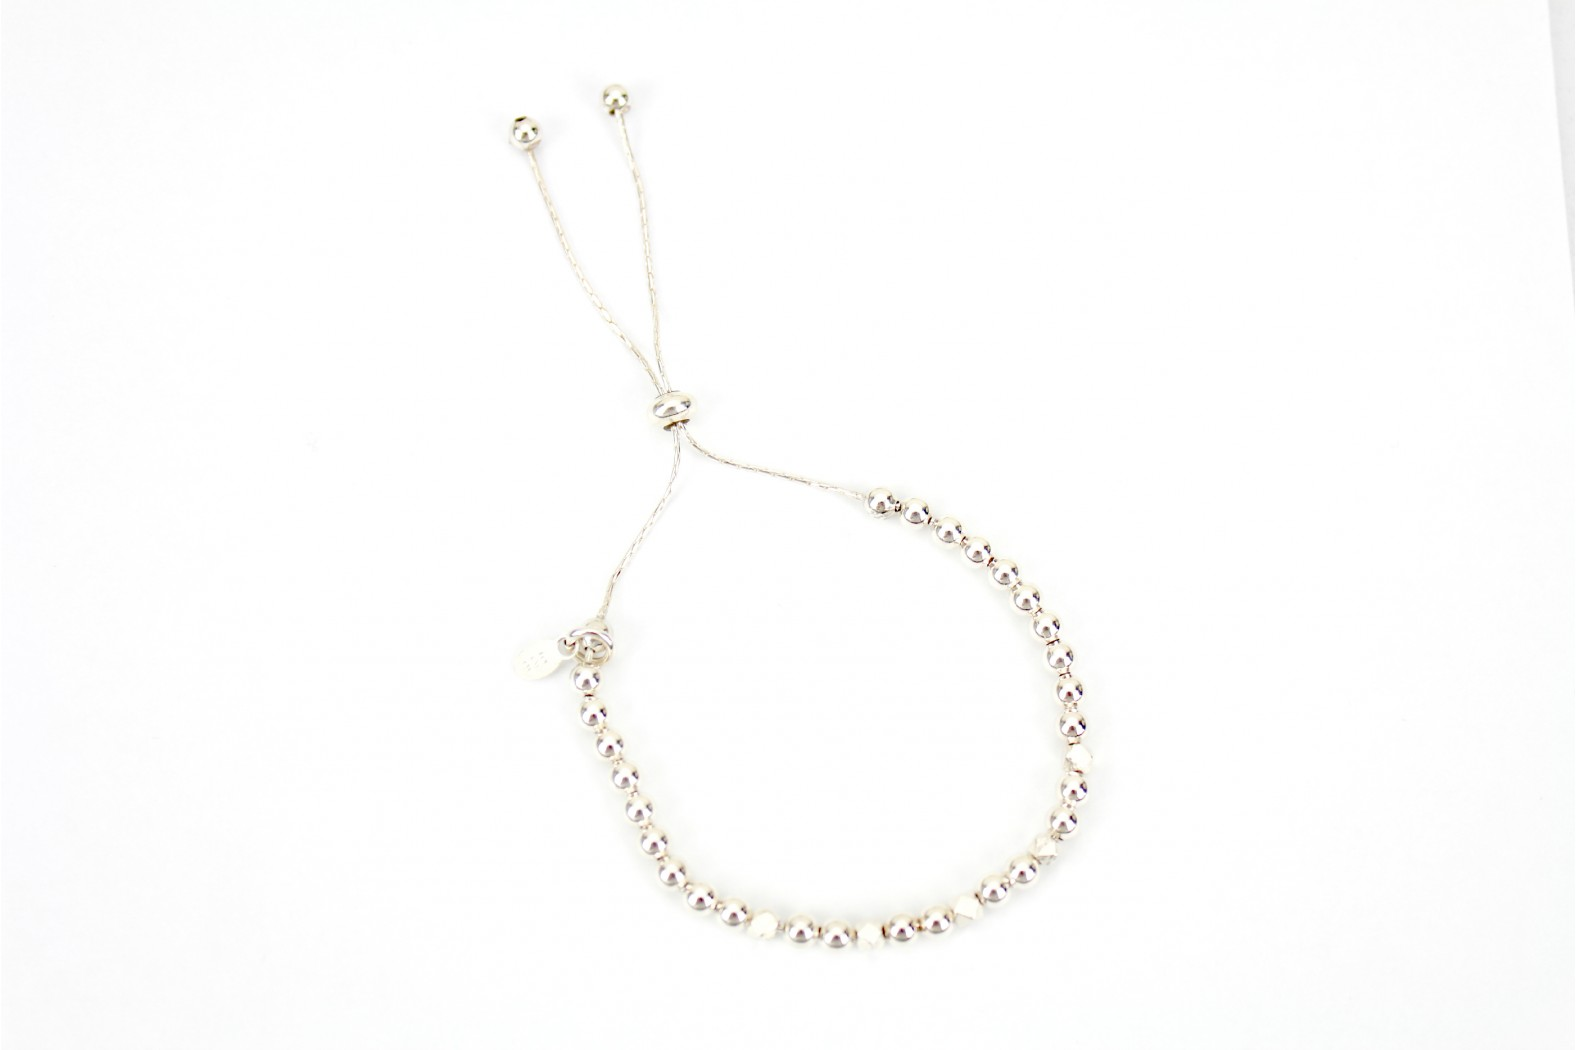 Adjustable pull style to alter silver ball Bracelet